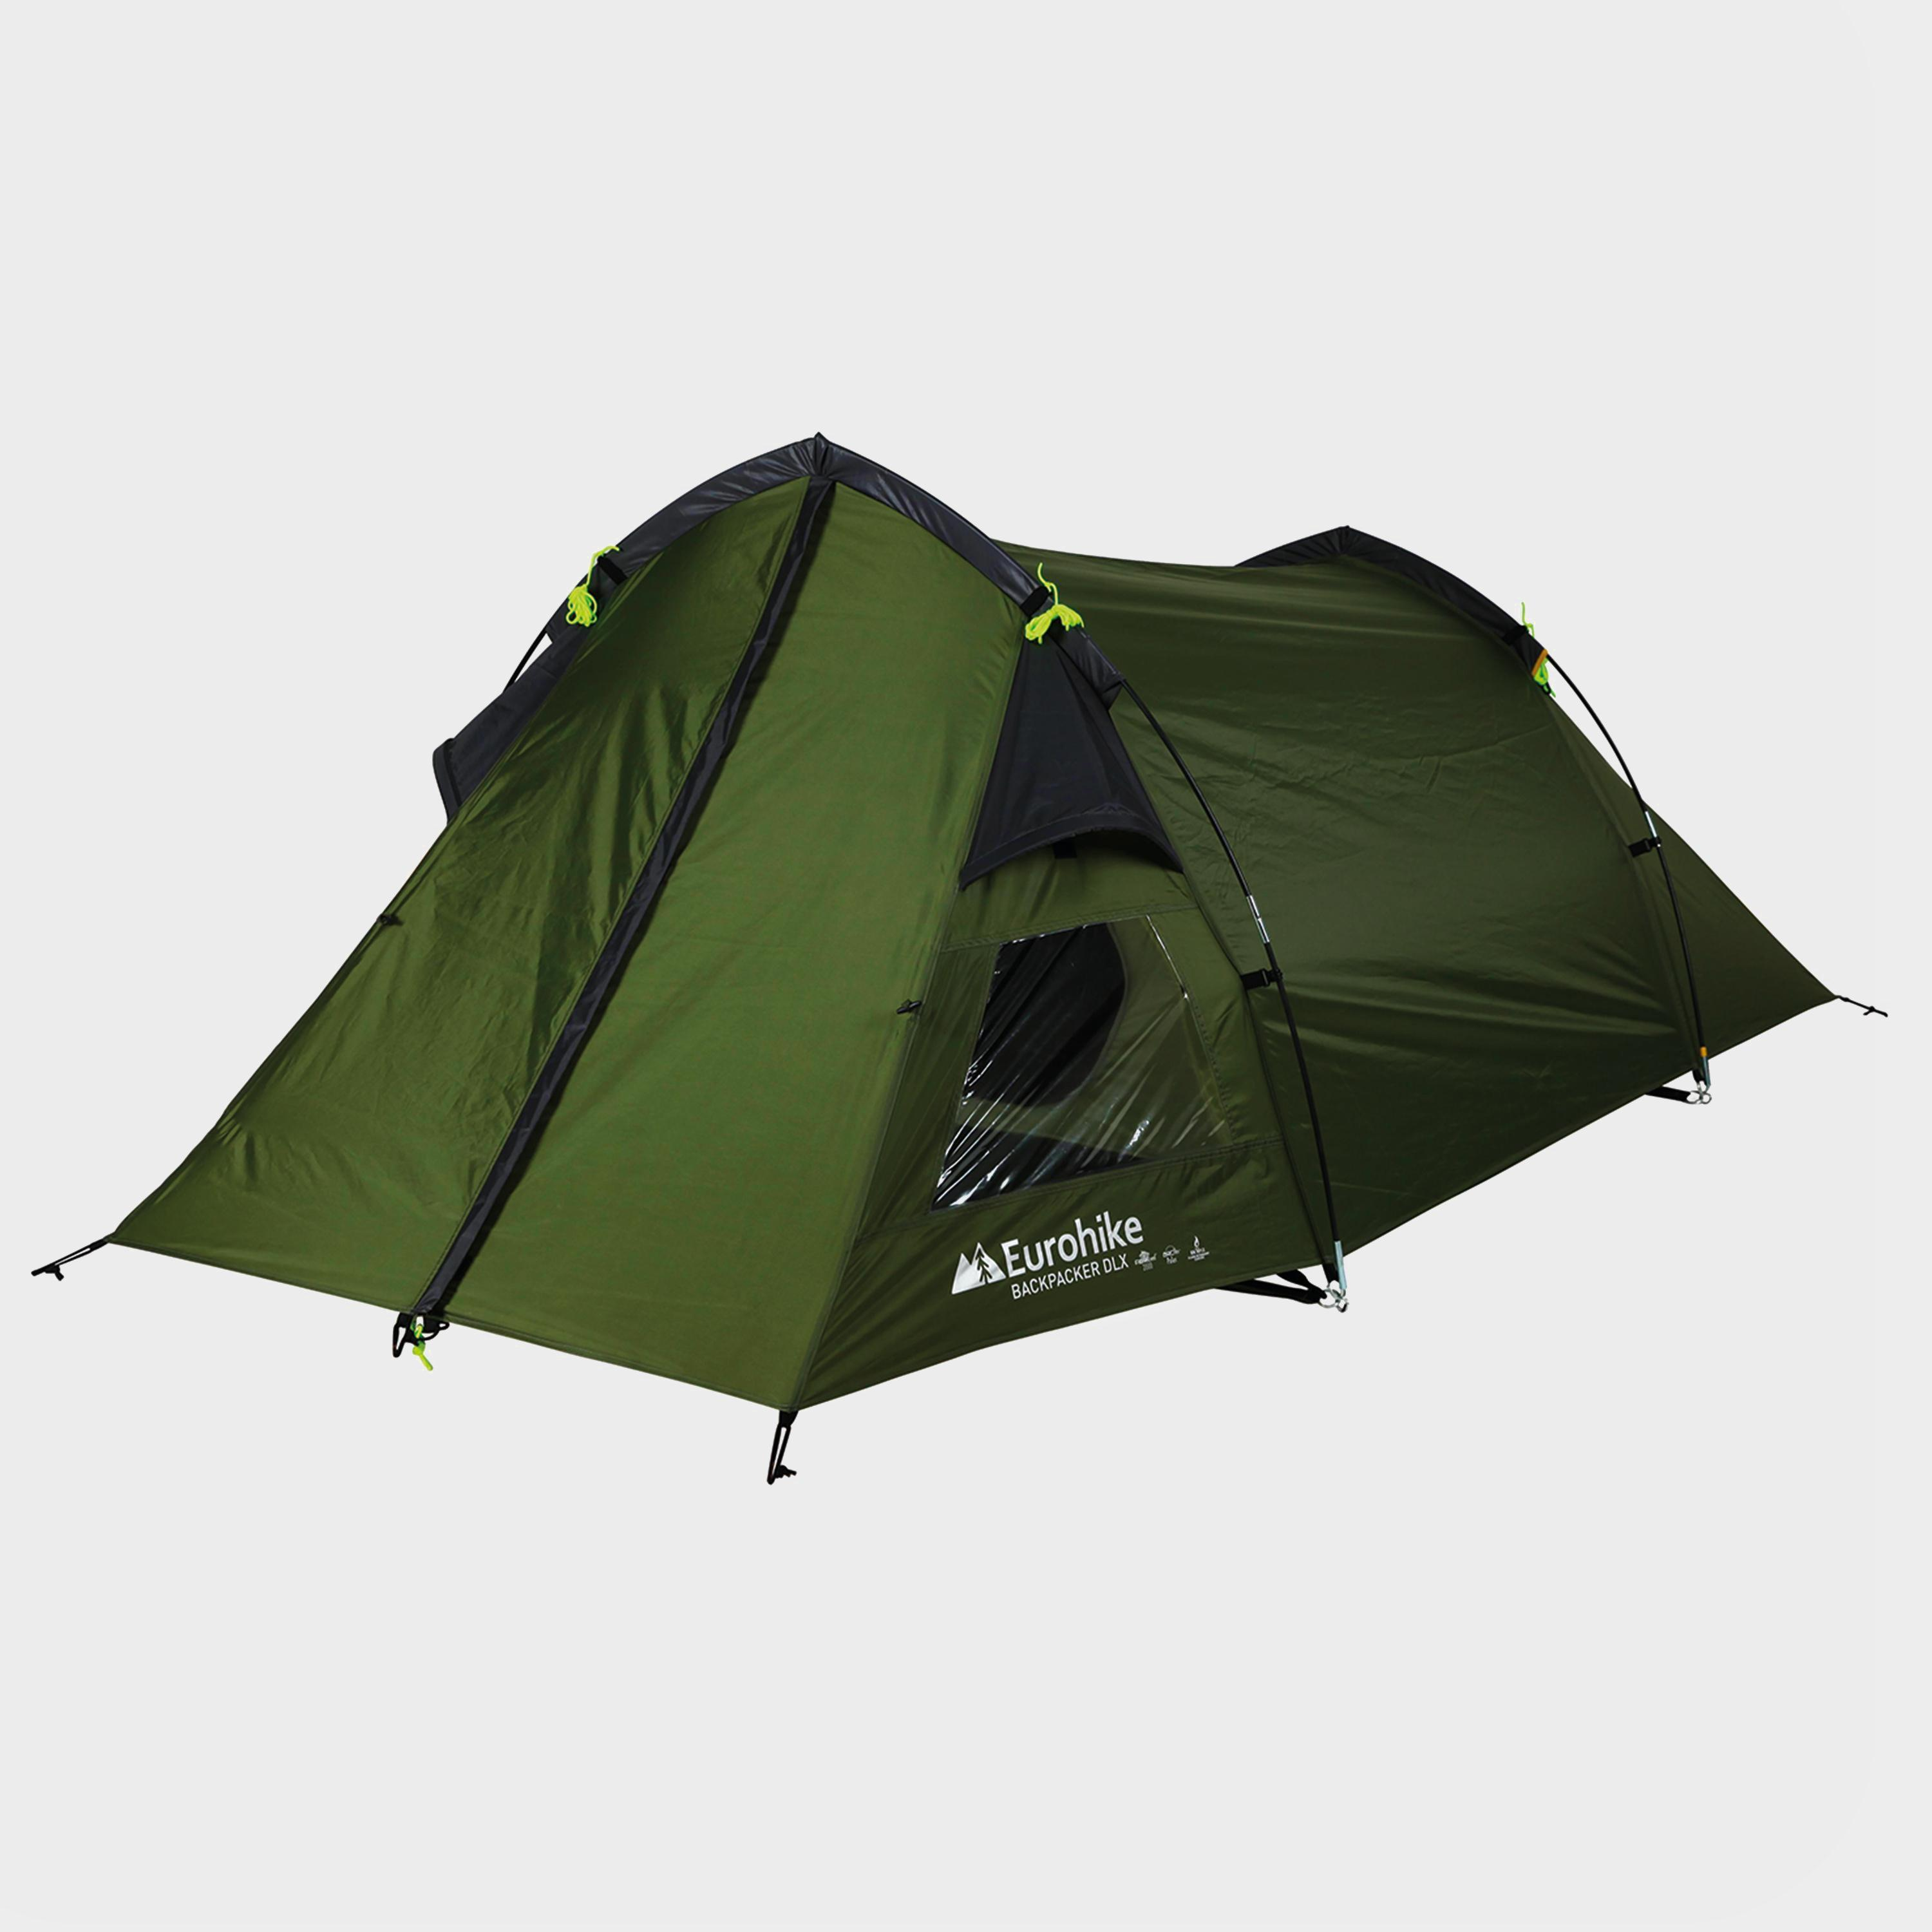 Green EUROHIKE Backpacker Deluxe Tent ... & 2 Man Tent | 2 Person Tents | Millets